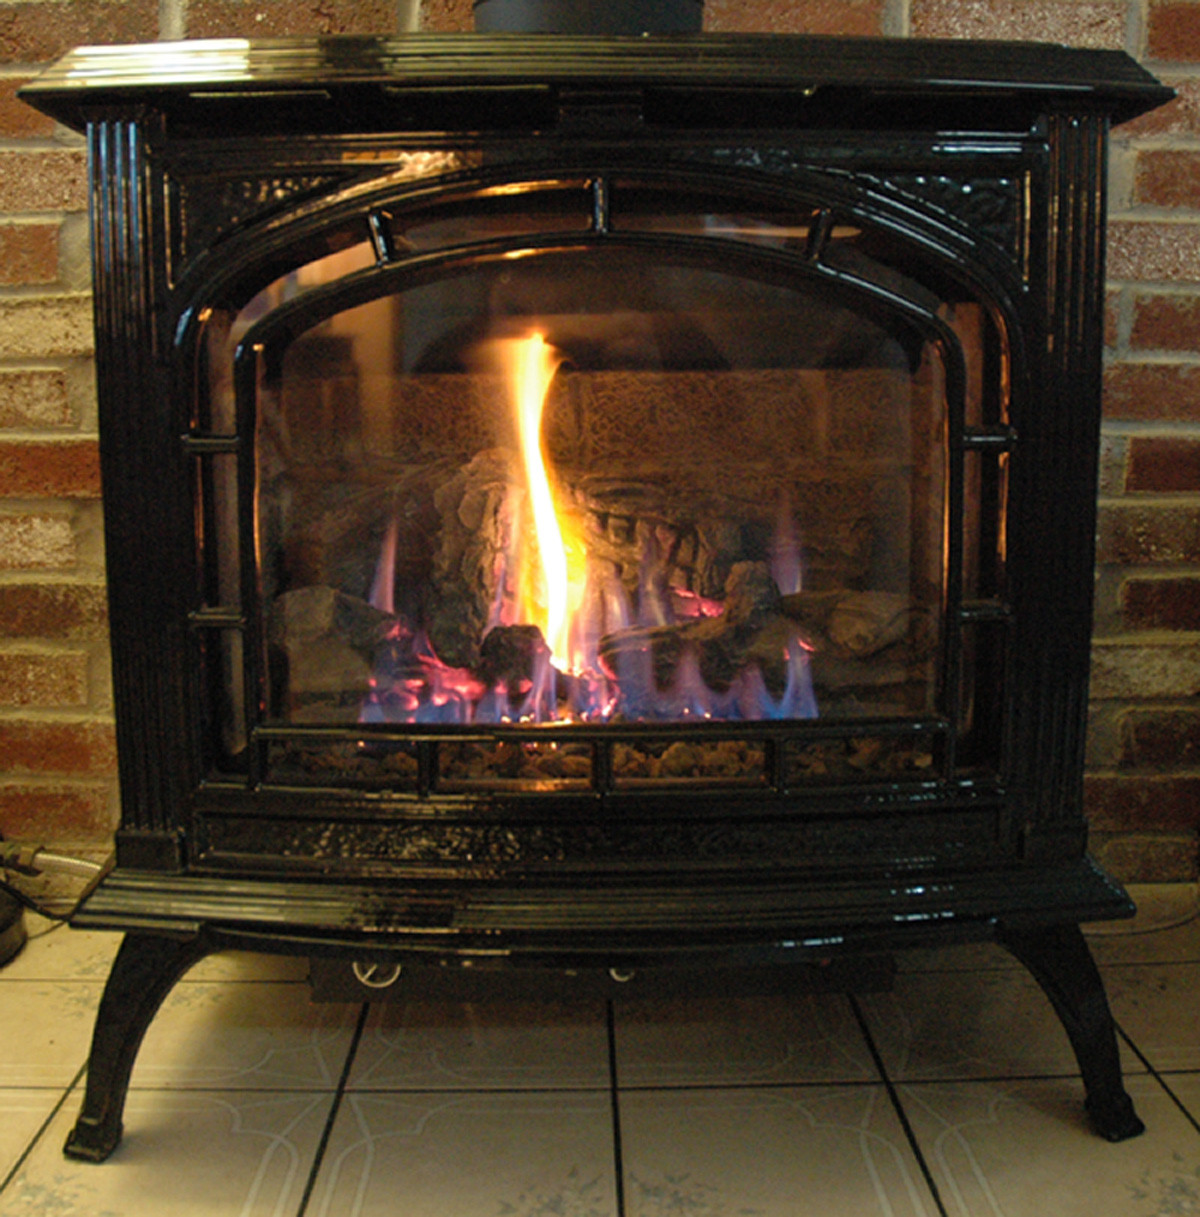 Best ideas about Propane Fireplace Heater . Save or Pin Gas Direct Vent Space Heaters Fireplaces and Wall Furnaces Now.